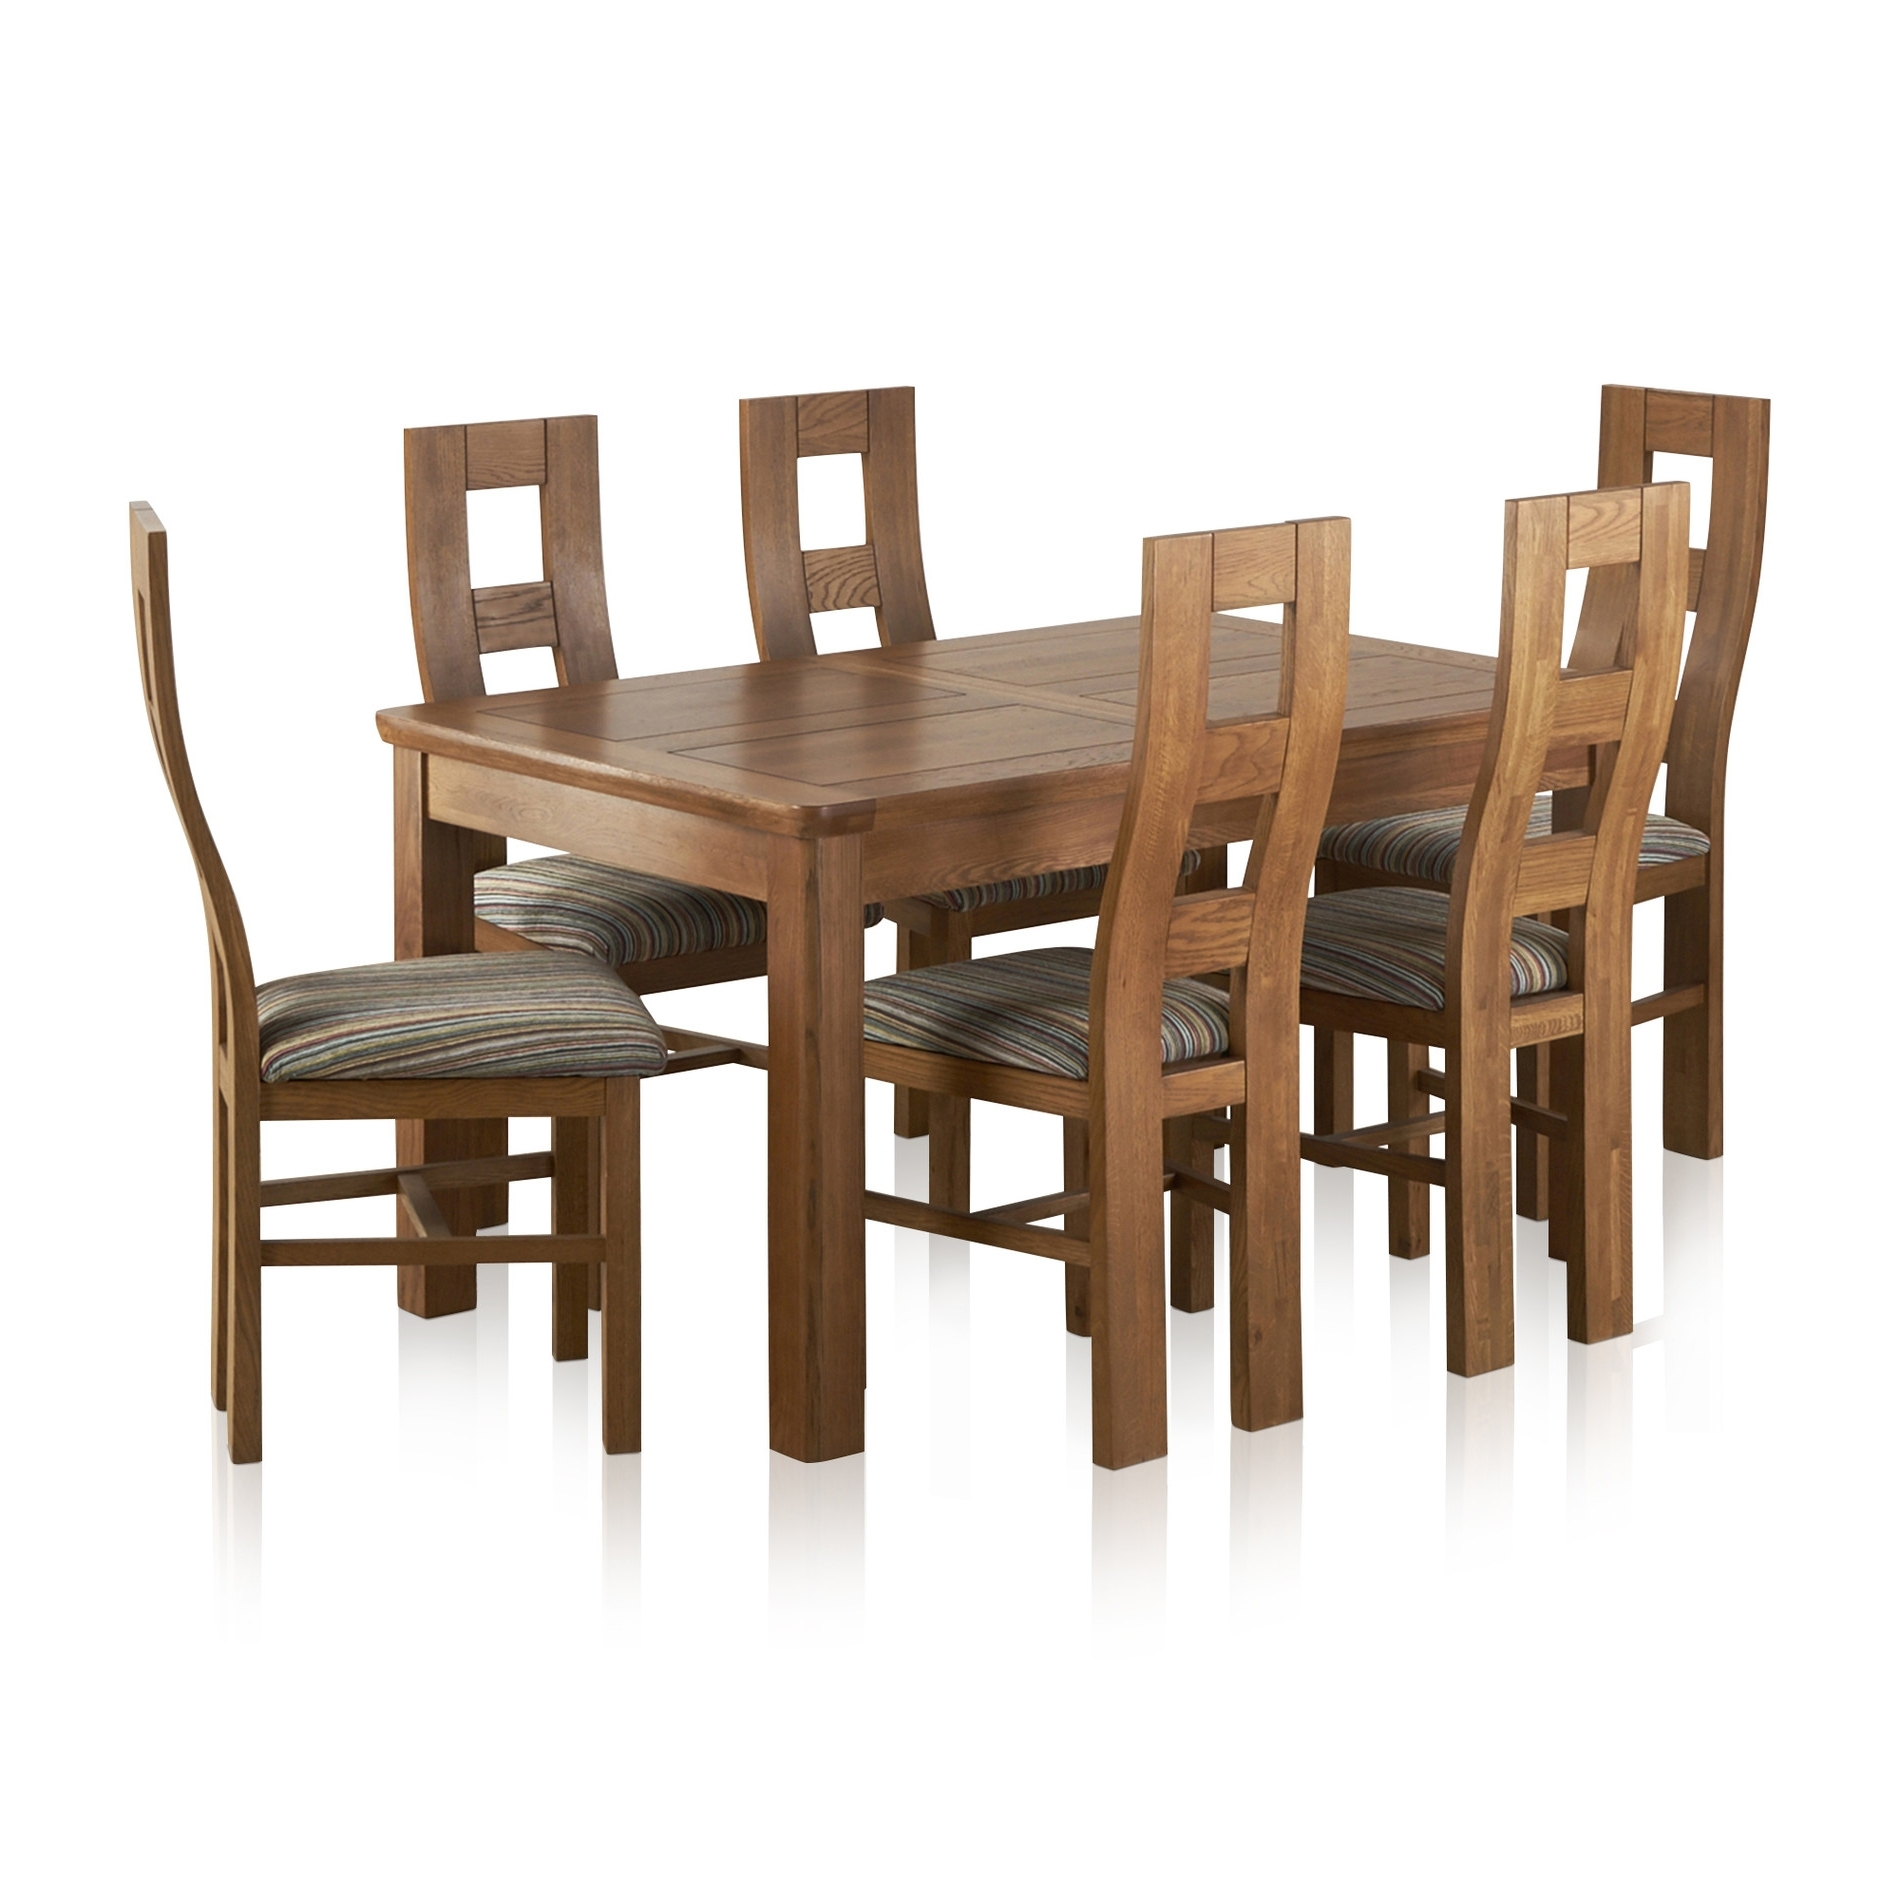 Famous Extendable Dining Table And 6 Chairs With Orrick Extending Dining Set In Rustic Oak: Table + 6 Beige Chairs (View 12 of 25)